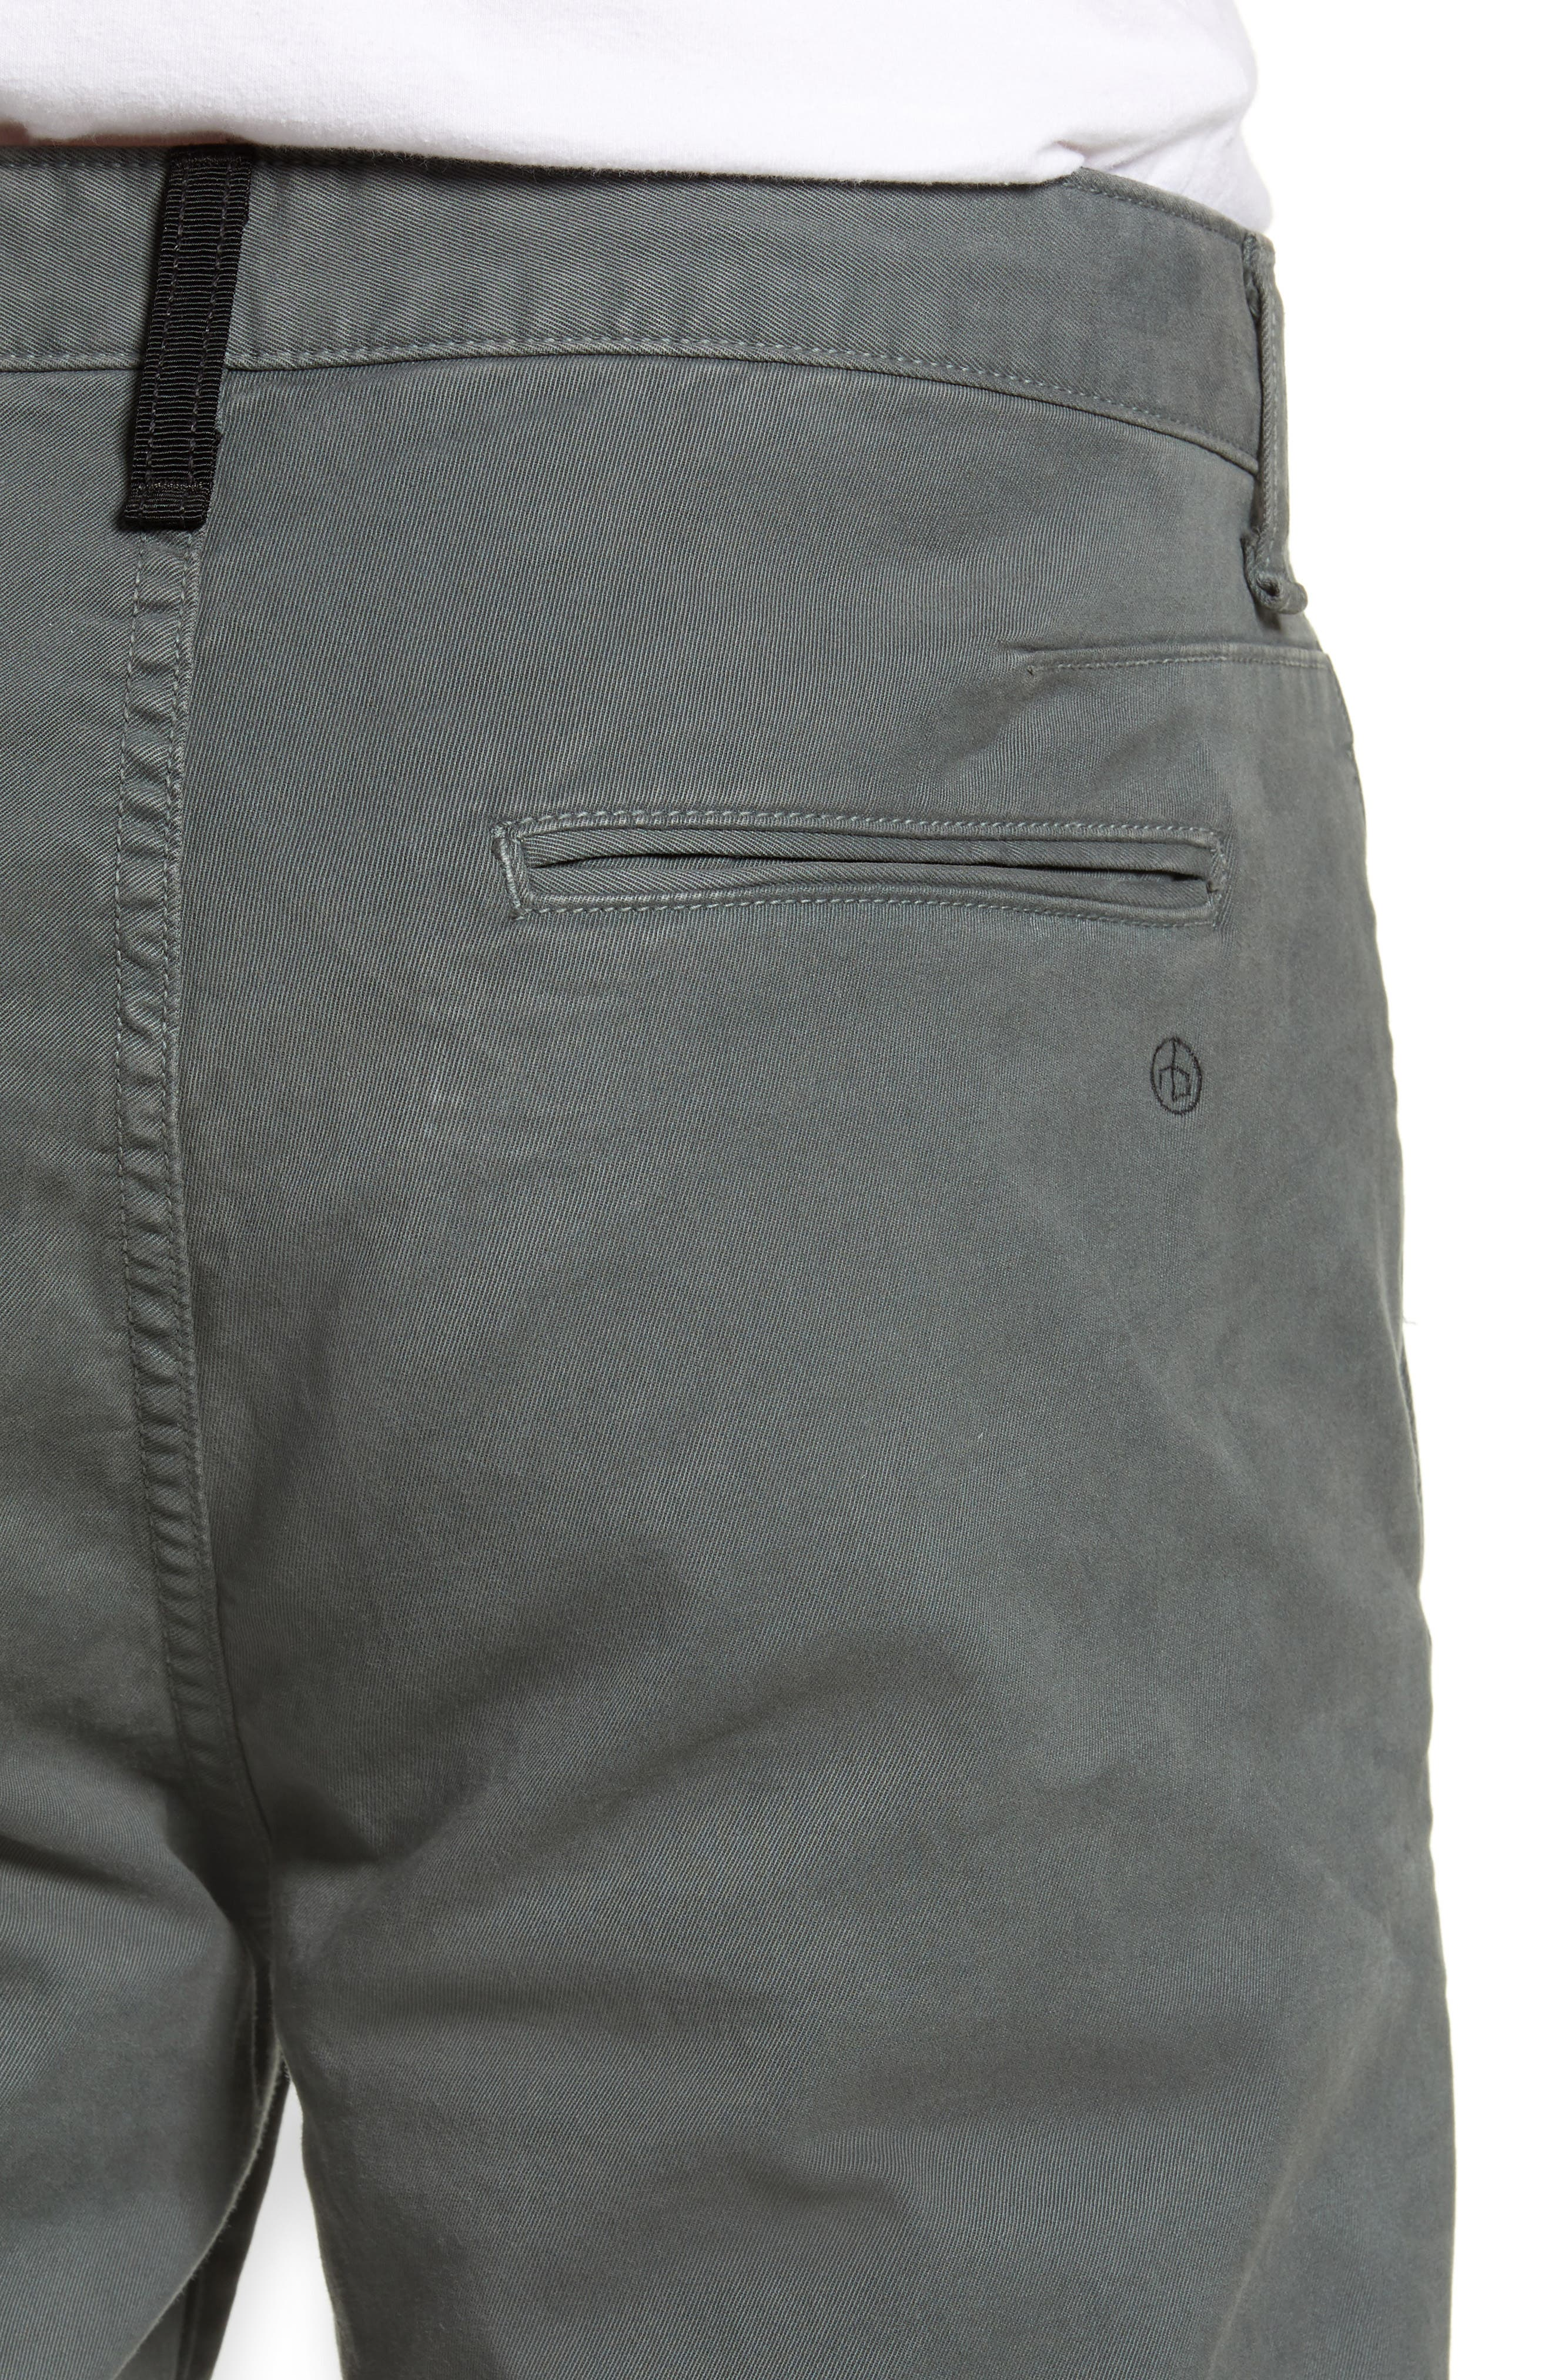 Fit 2 Slim Fit Chinos,                             Alternate thumbnail 4, color,                             TORREY PINE